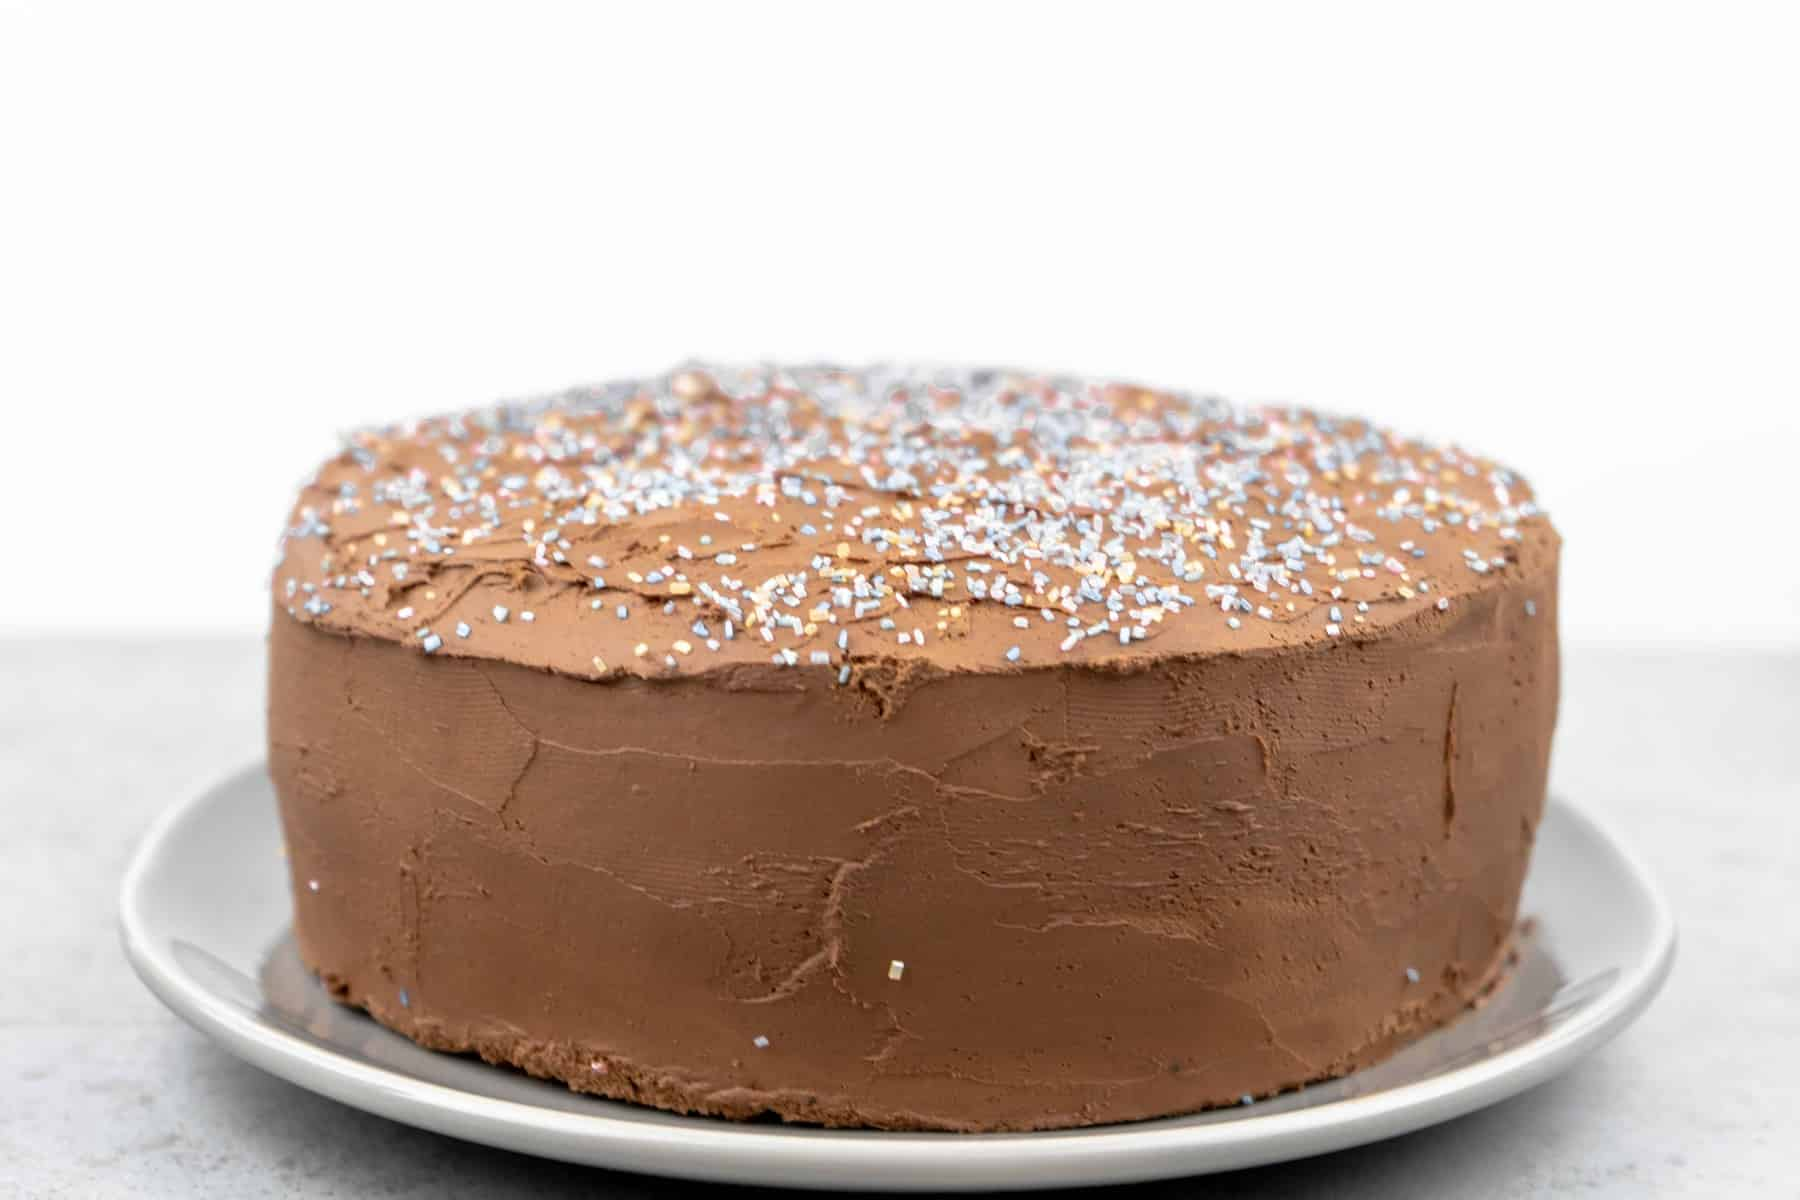 Chocolate Coconut Stout Cake with Whipped Chocolate Ganache Frosting